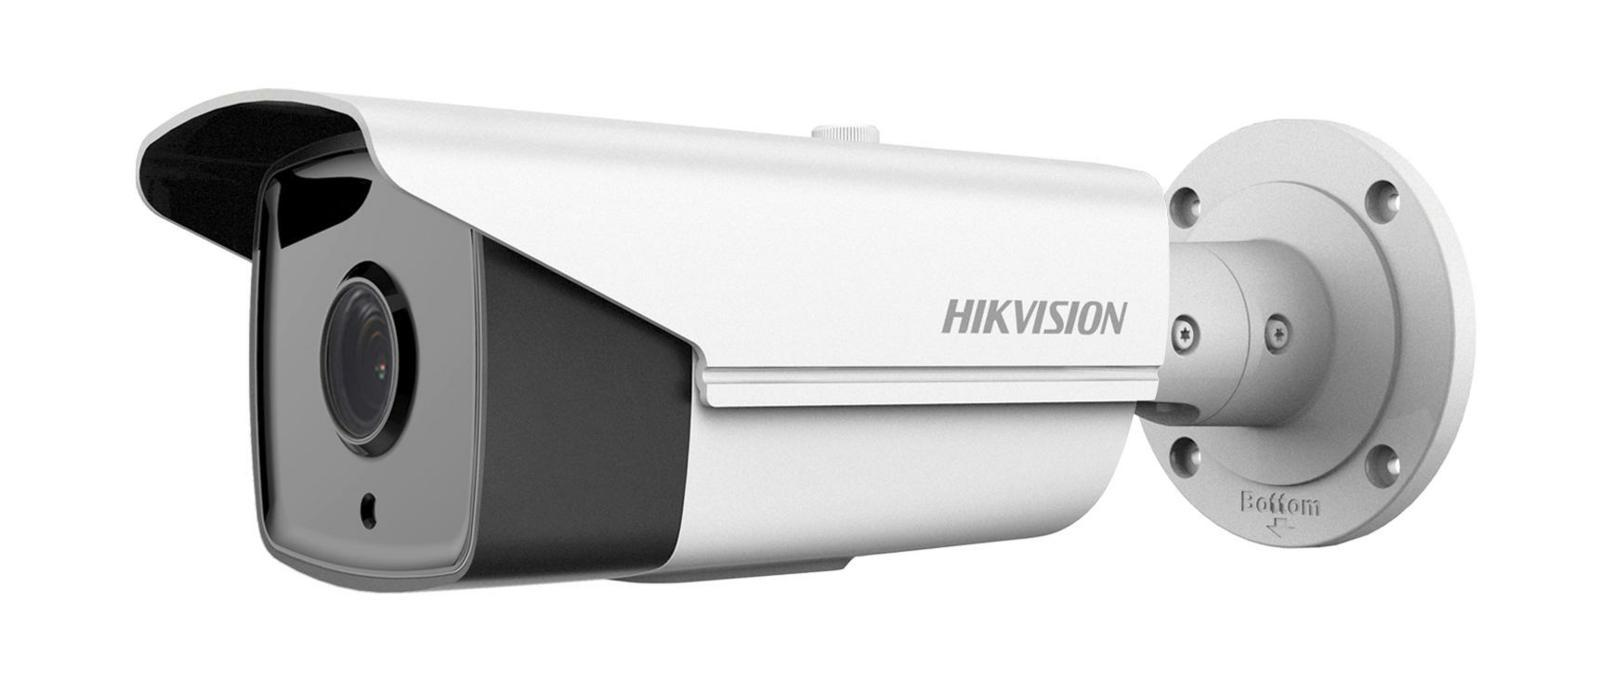 SICE Distributore Ufficiale  TELECAMERE IP TLC Bullet IP camera 5Mpx 12mm 1/3 CMOS IR 50m WDR | DS-2CD2T52-I5 12